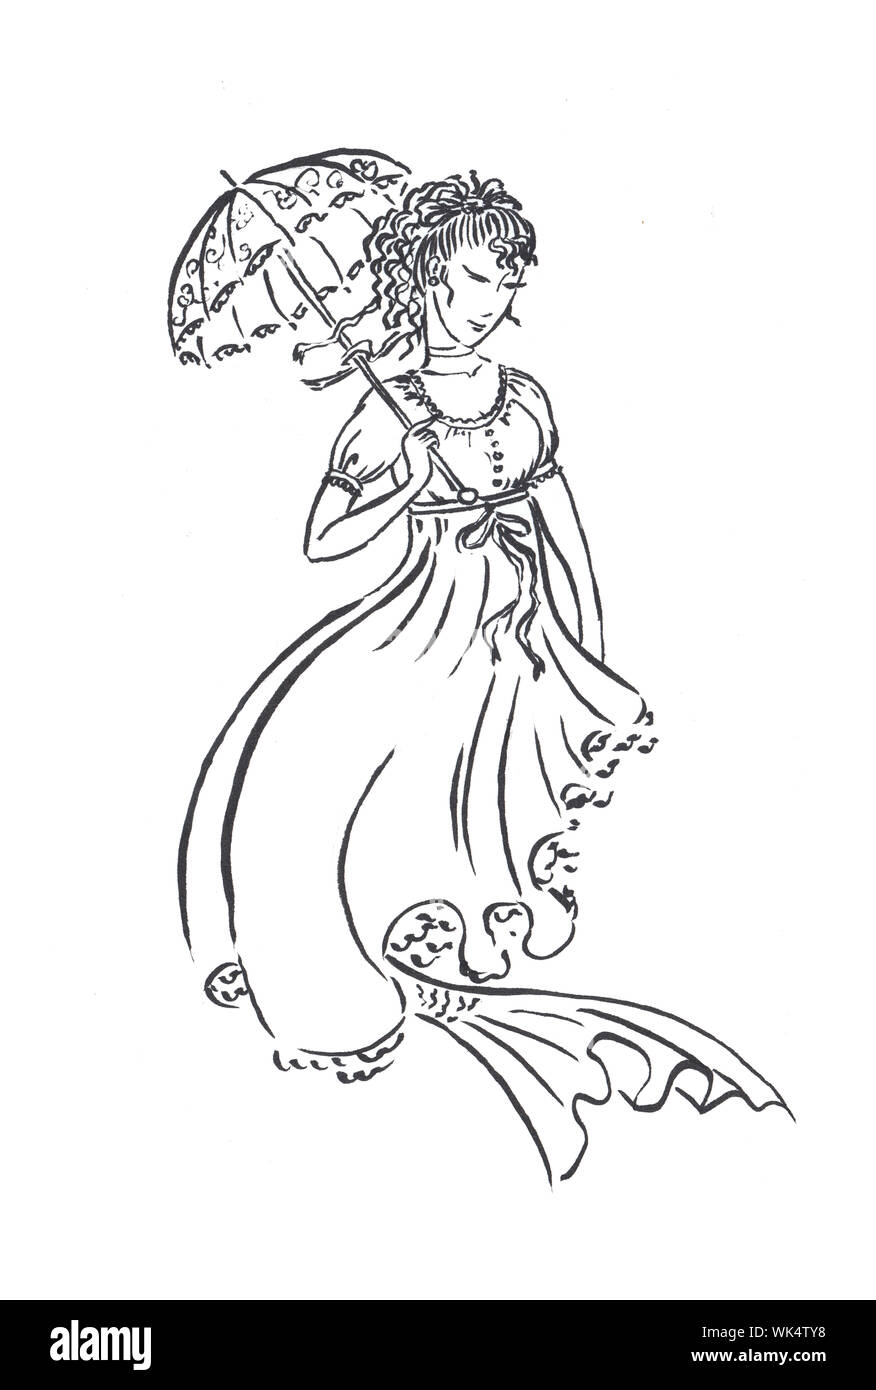 Advanced regency fashion coloring pages | 1390x876